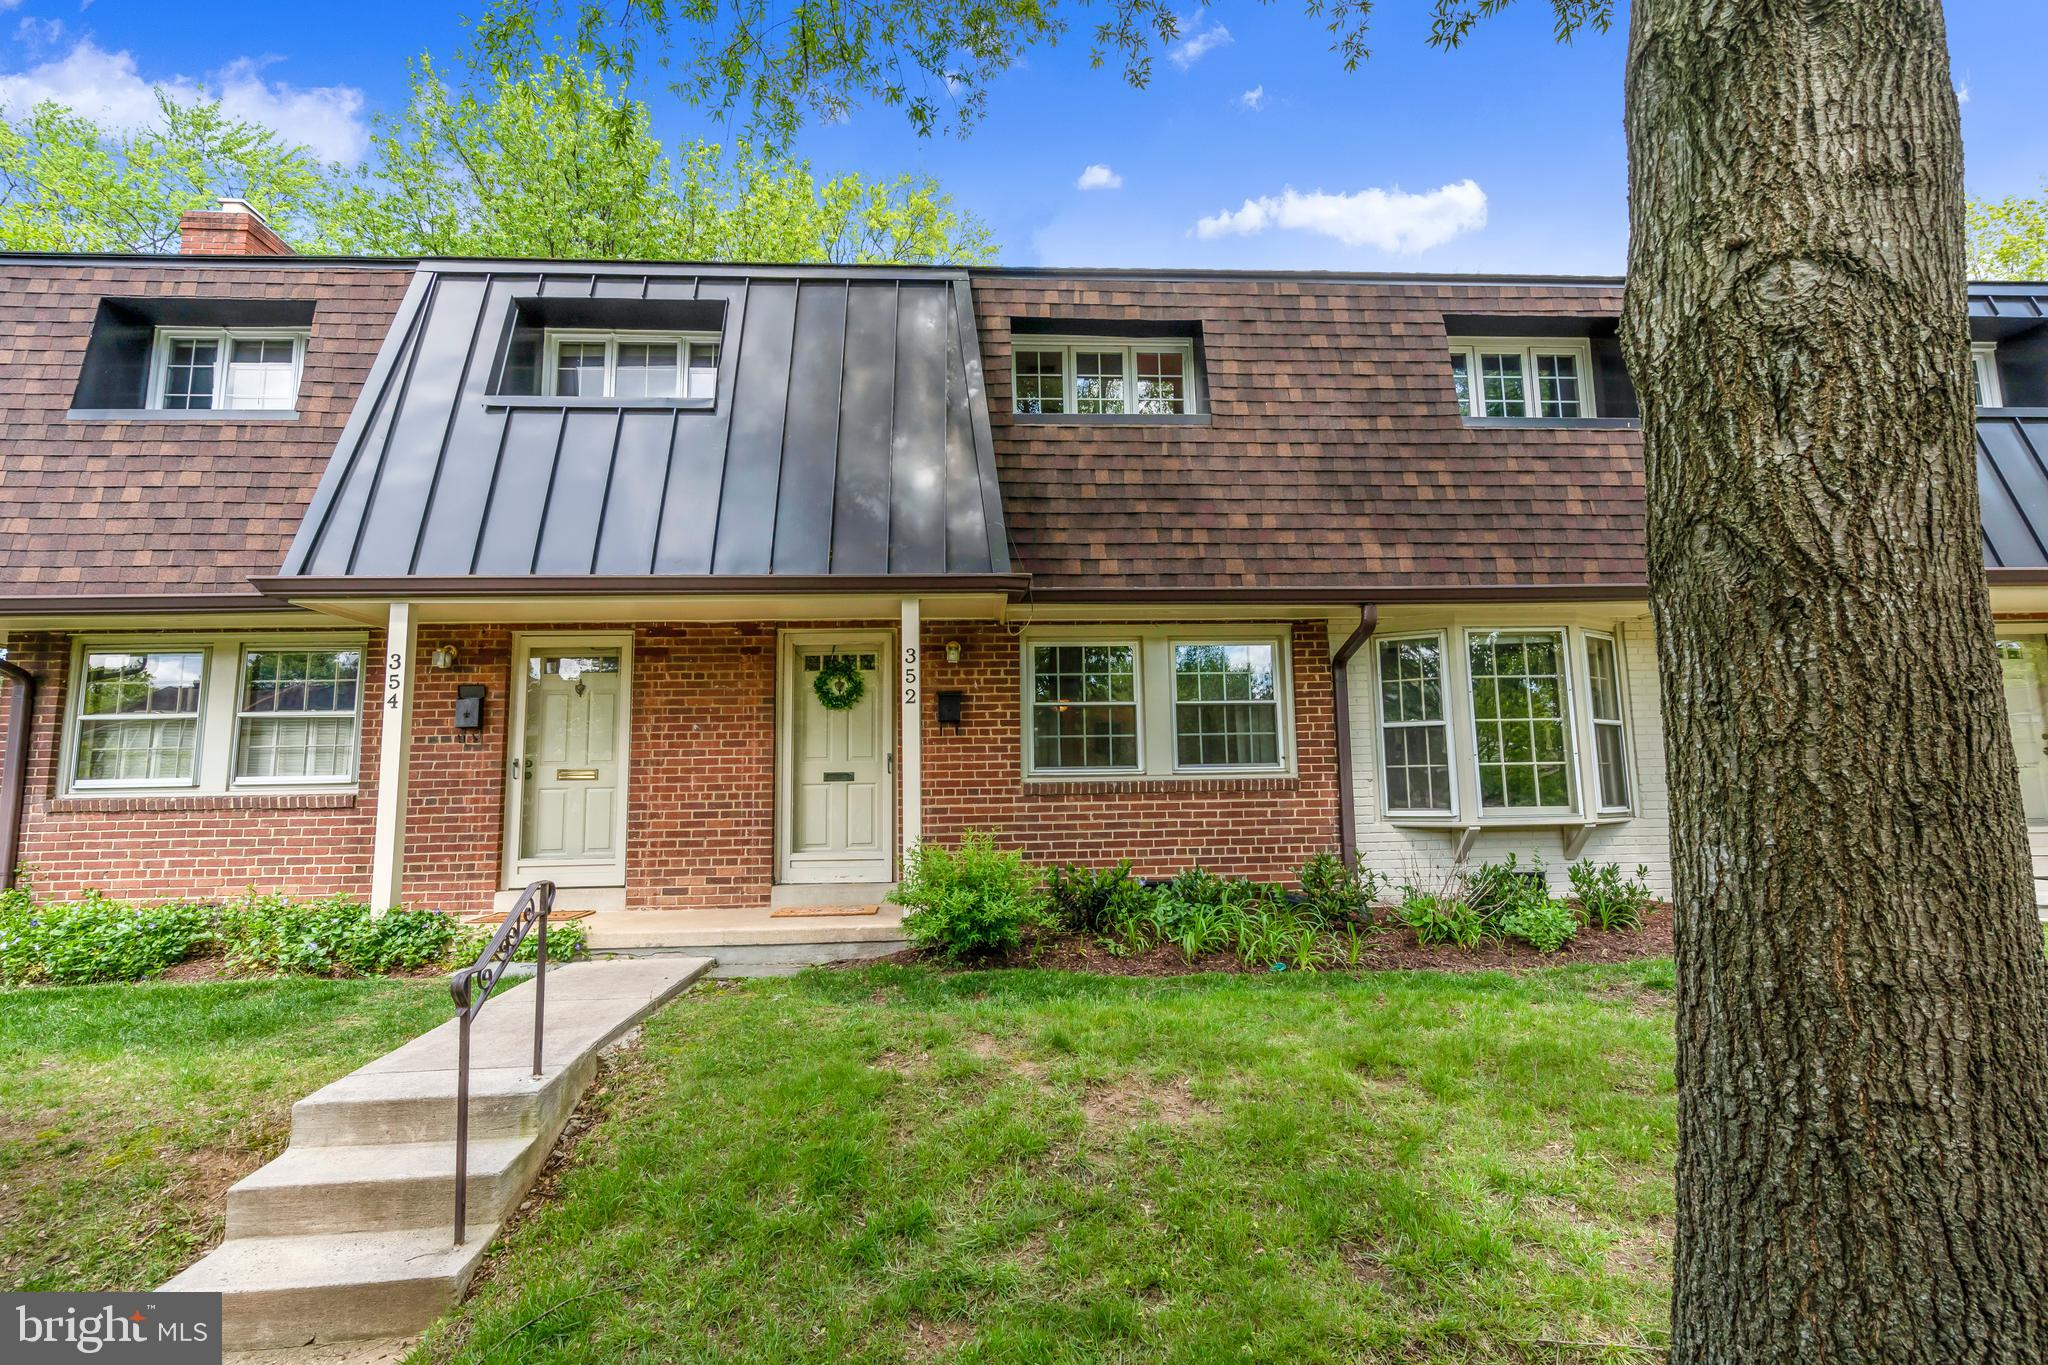 352 James Street 379, Falls Church, VA 22046